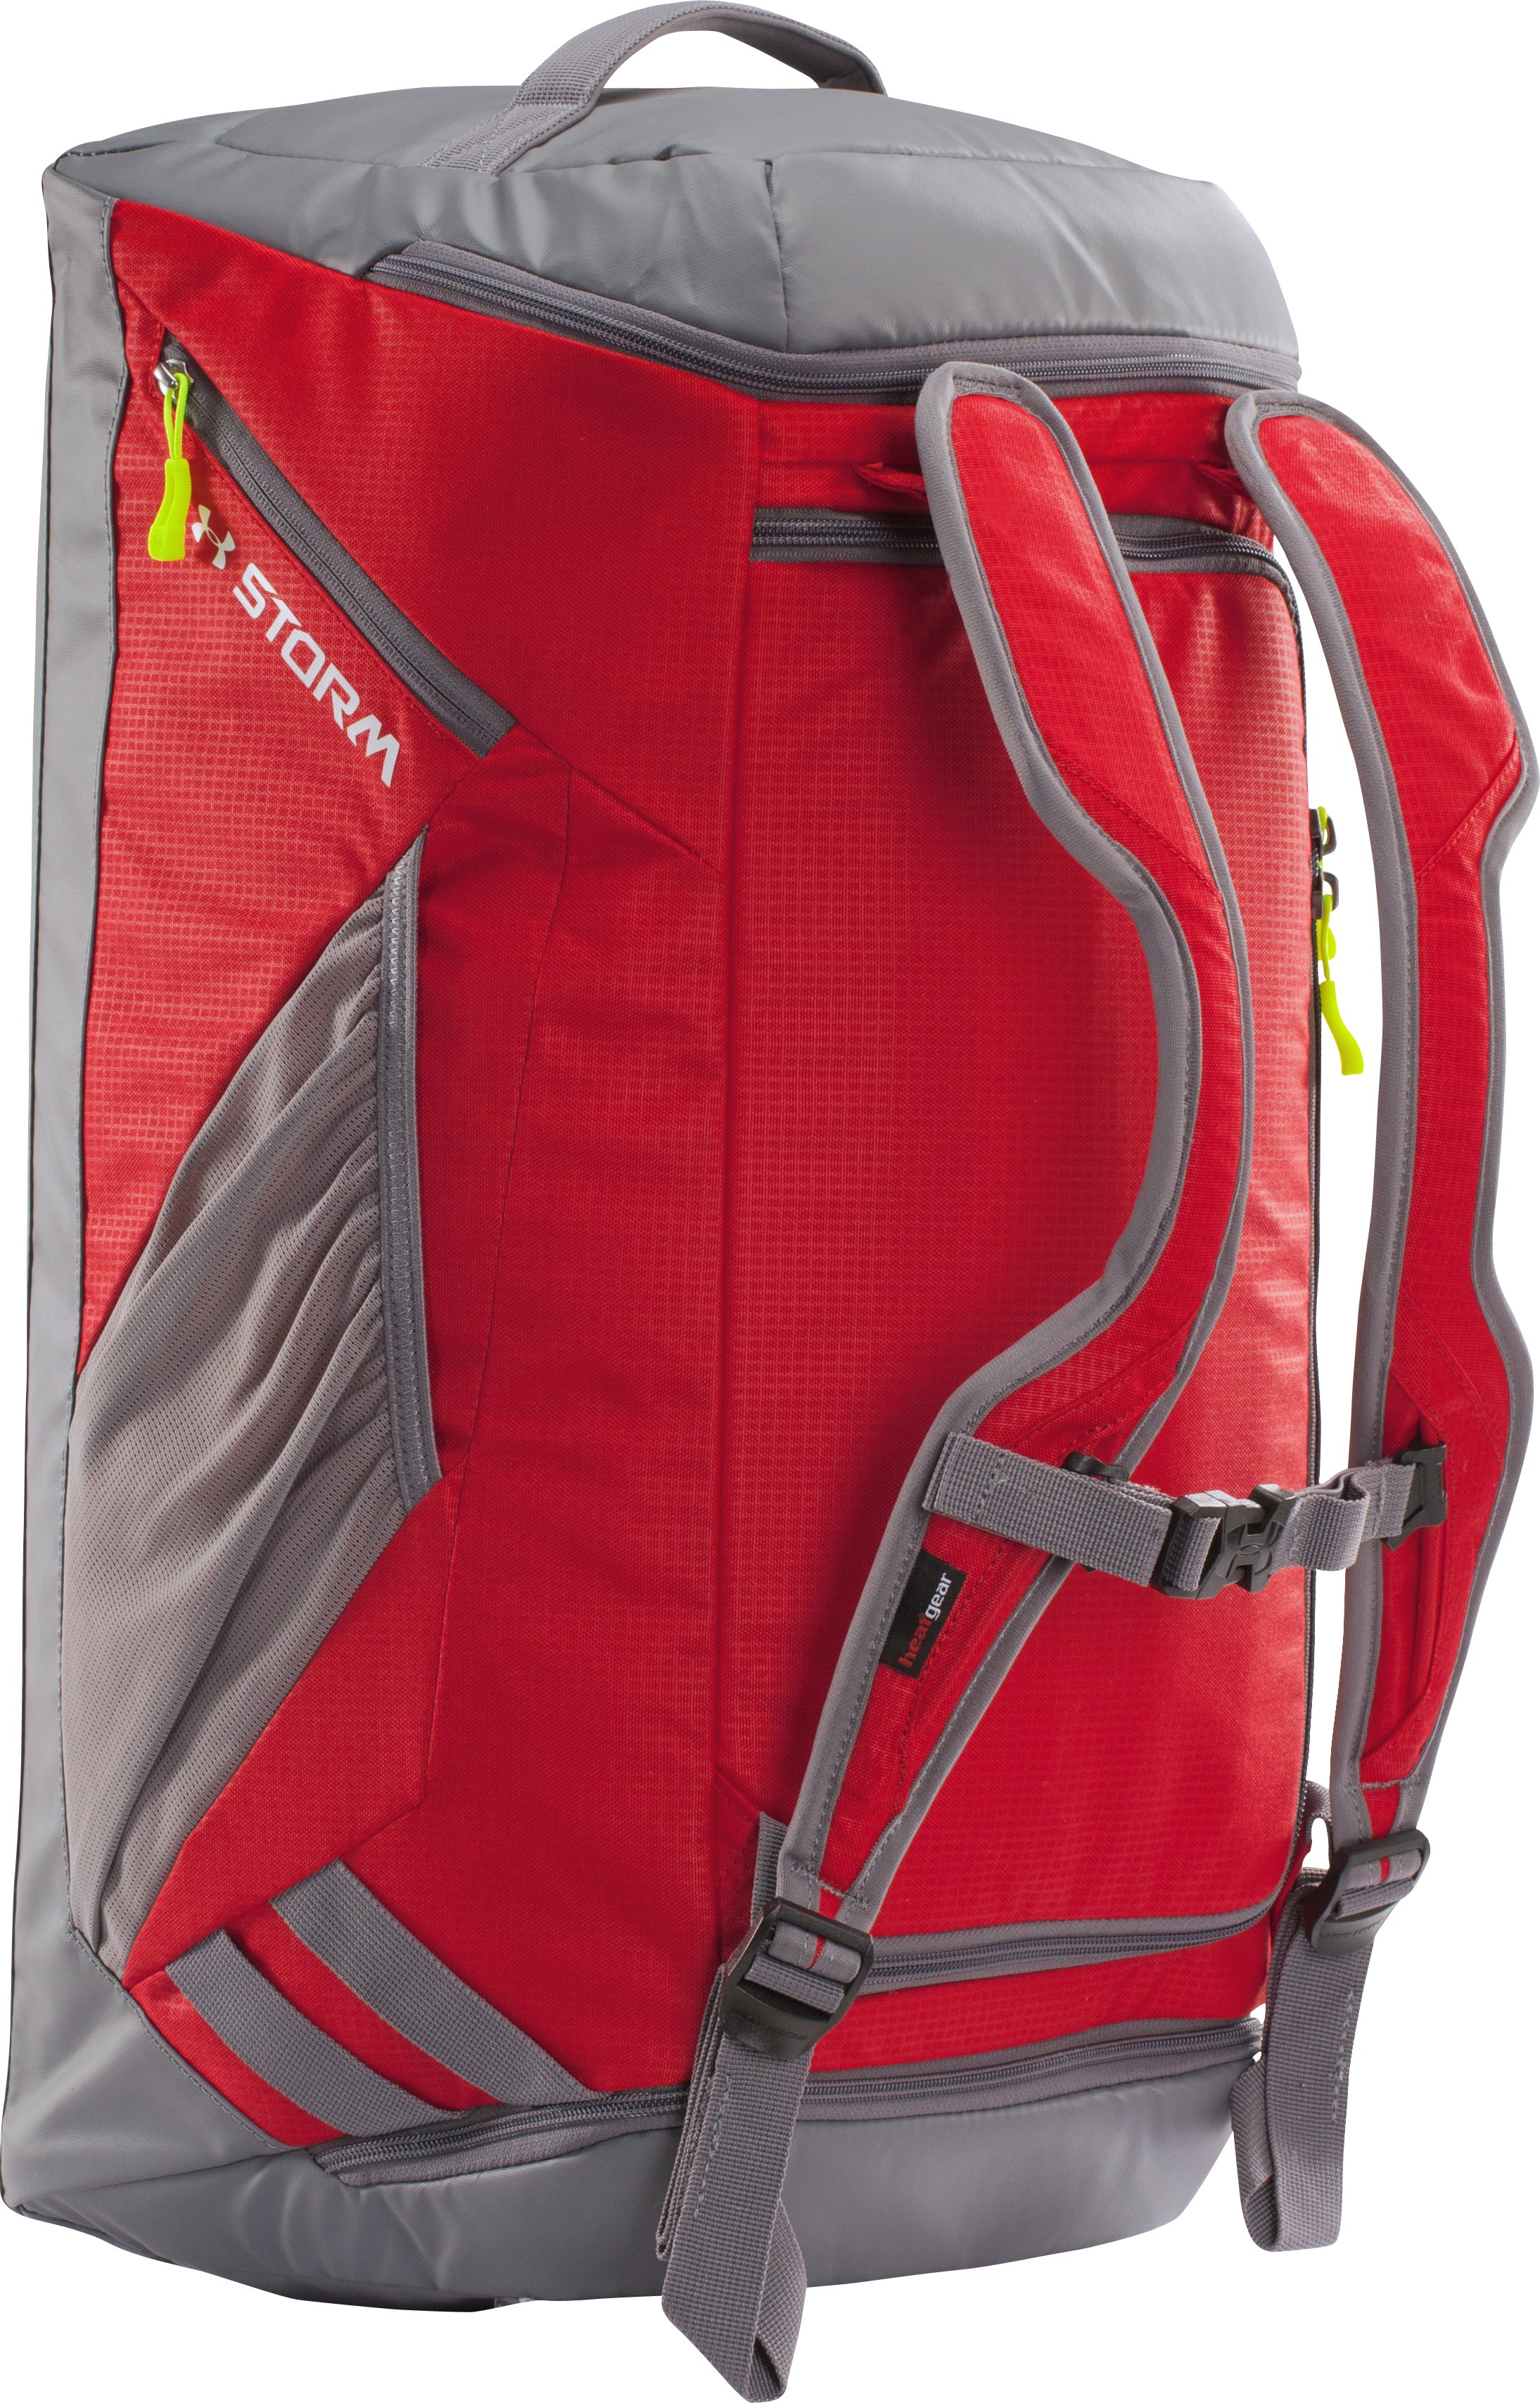 UA Storm Contain Backpack Duffle, Red